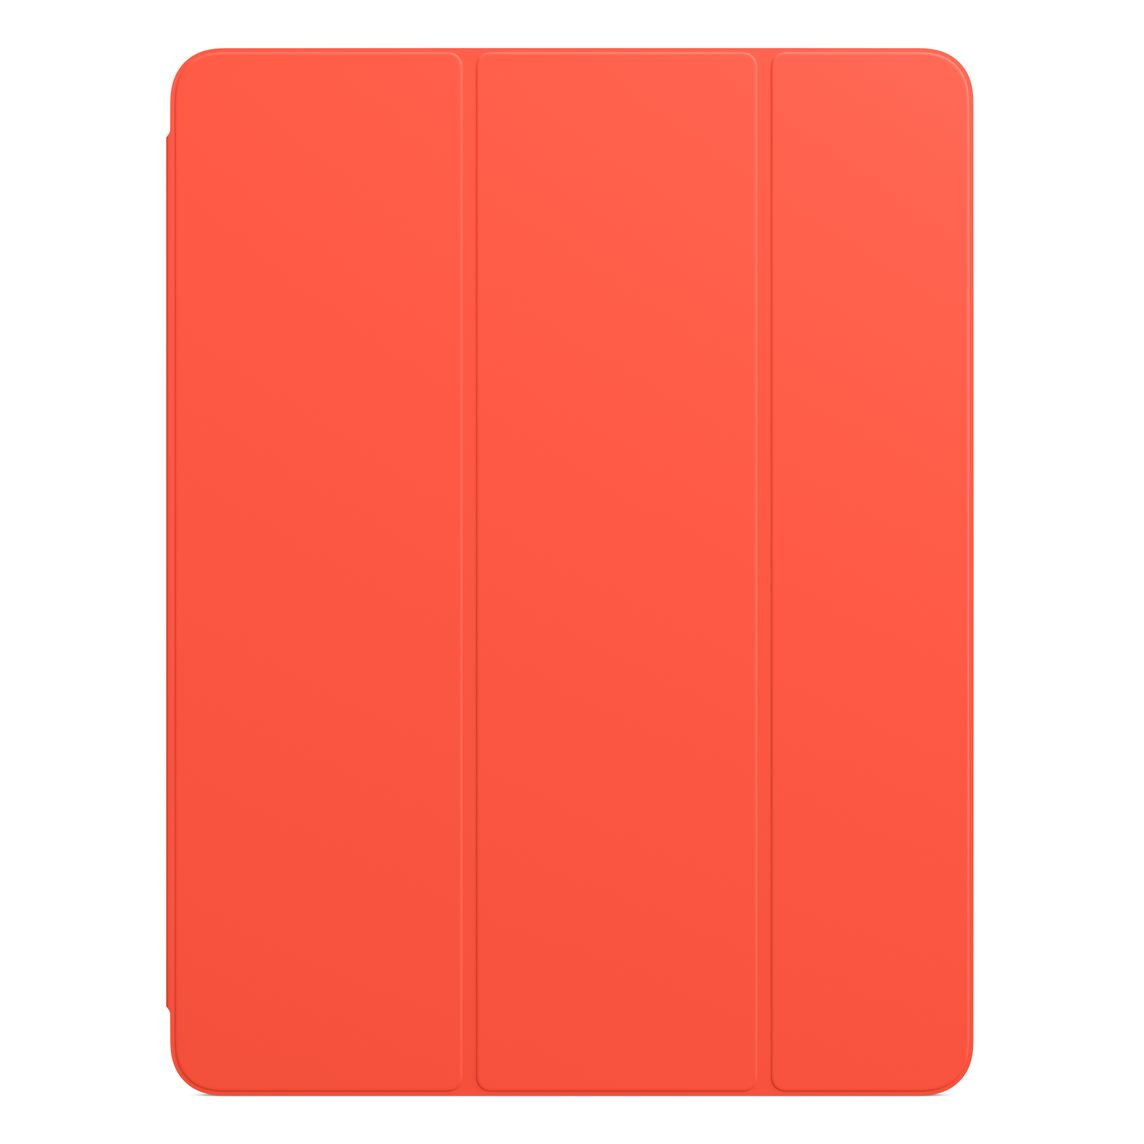 iPad Smart Folios and Smart Covers have been refreshed with two new spring colors